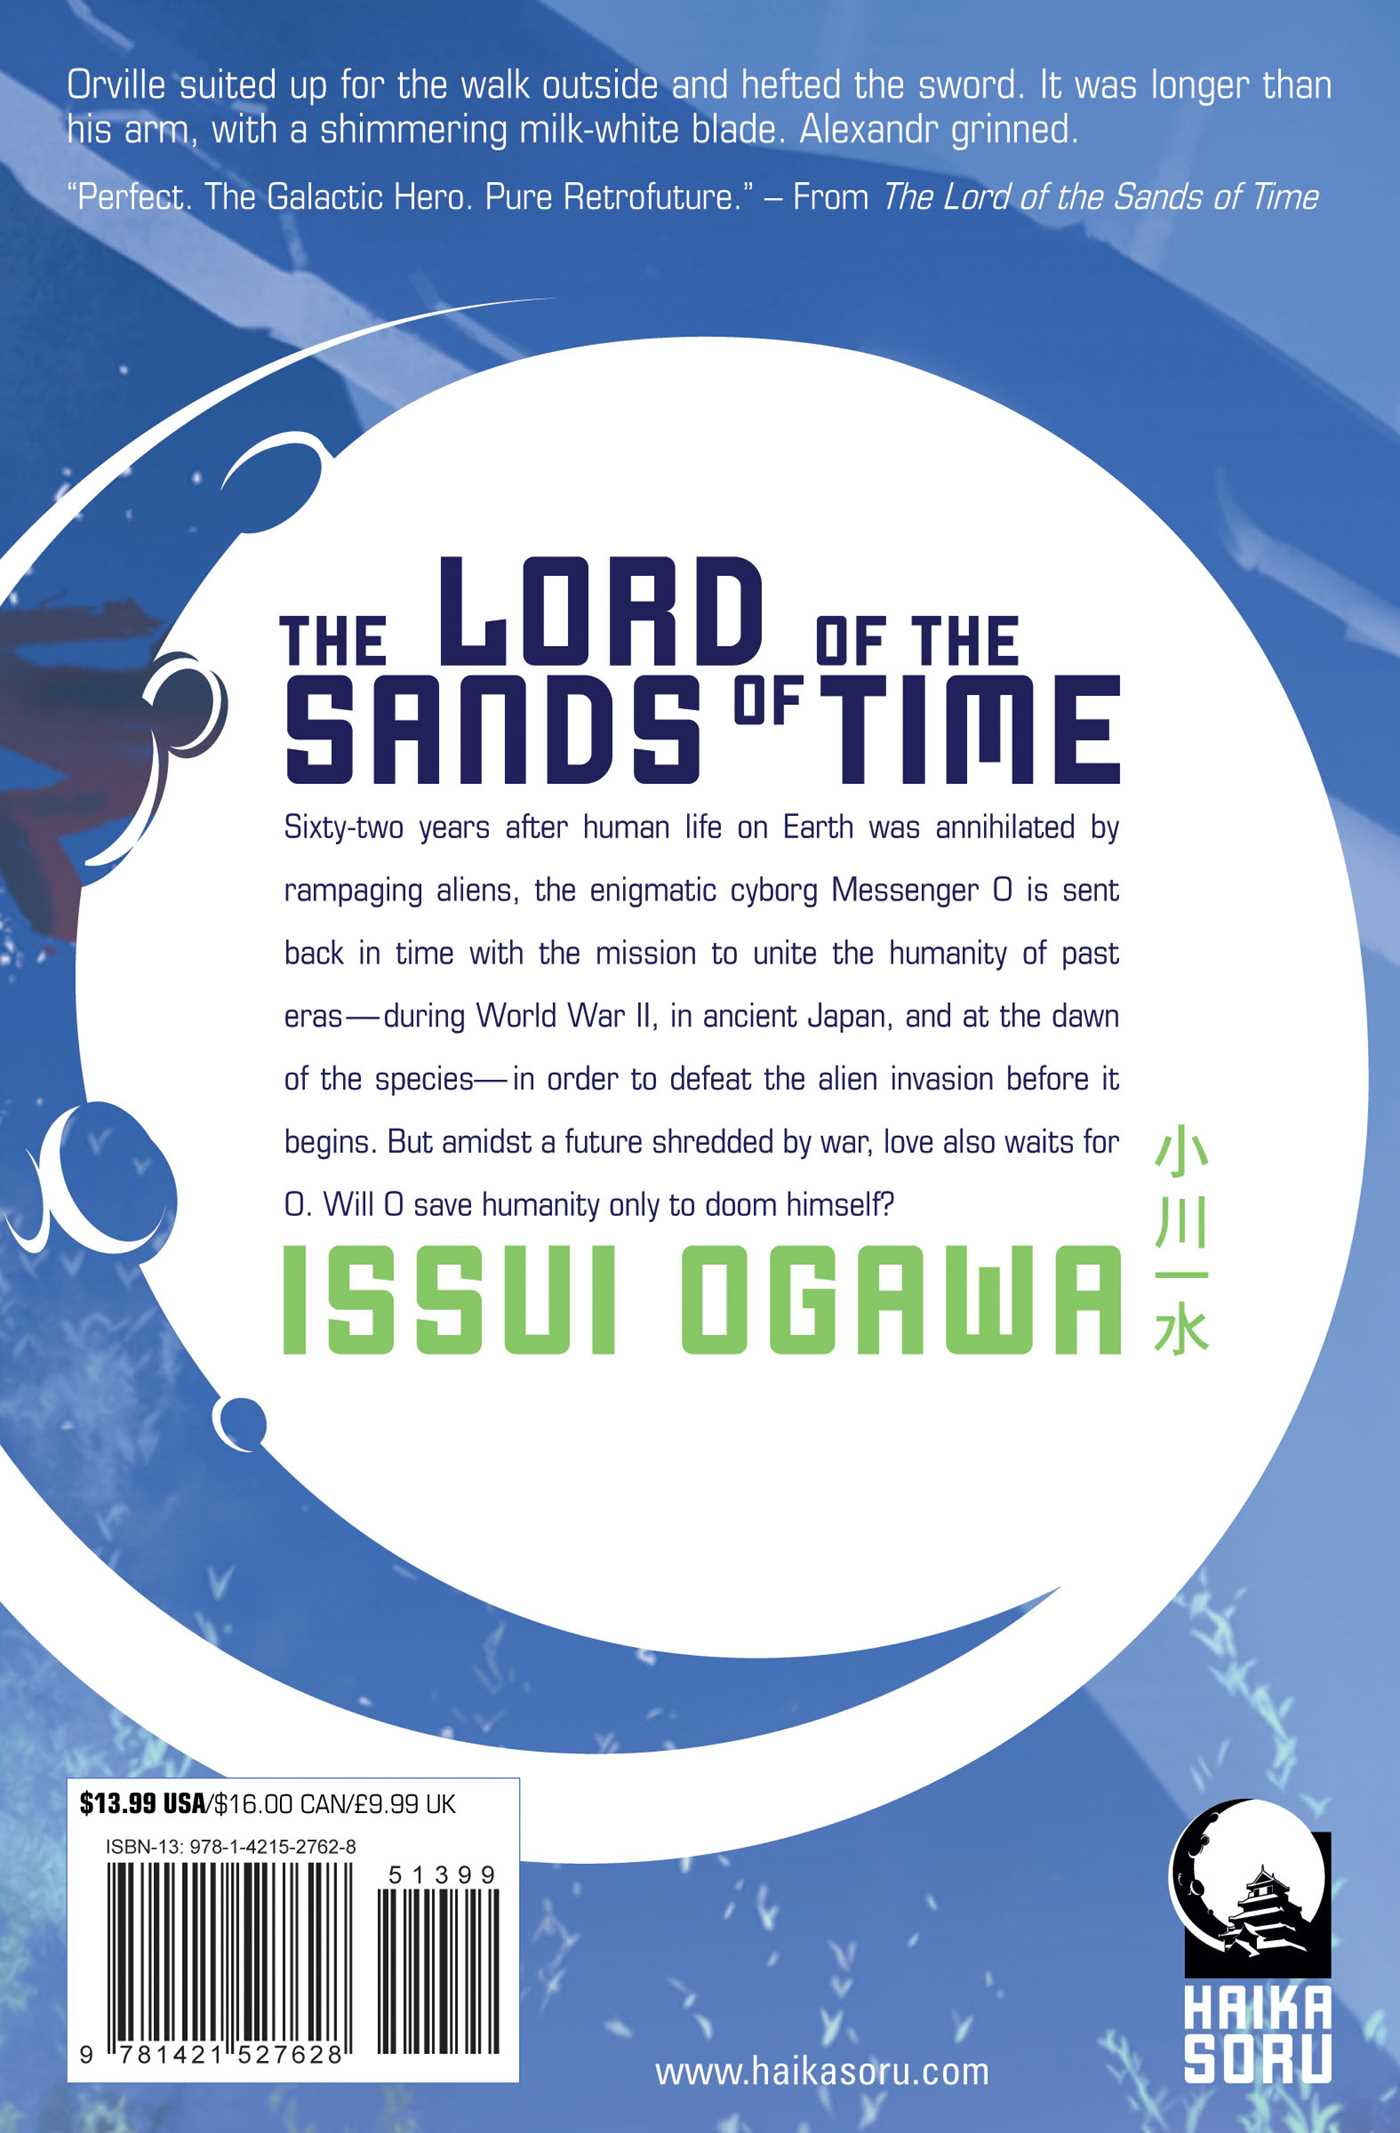 The lord of the sands of time novel 9781421527628 hr back